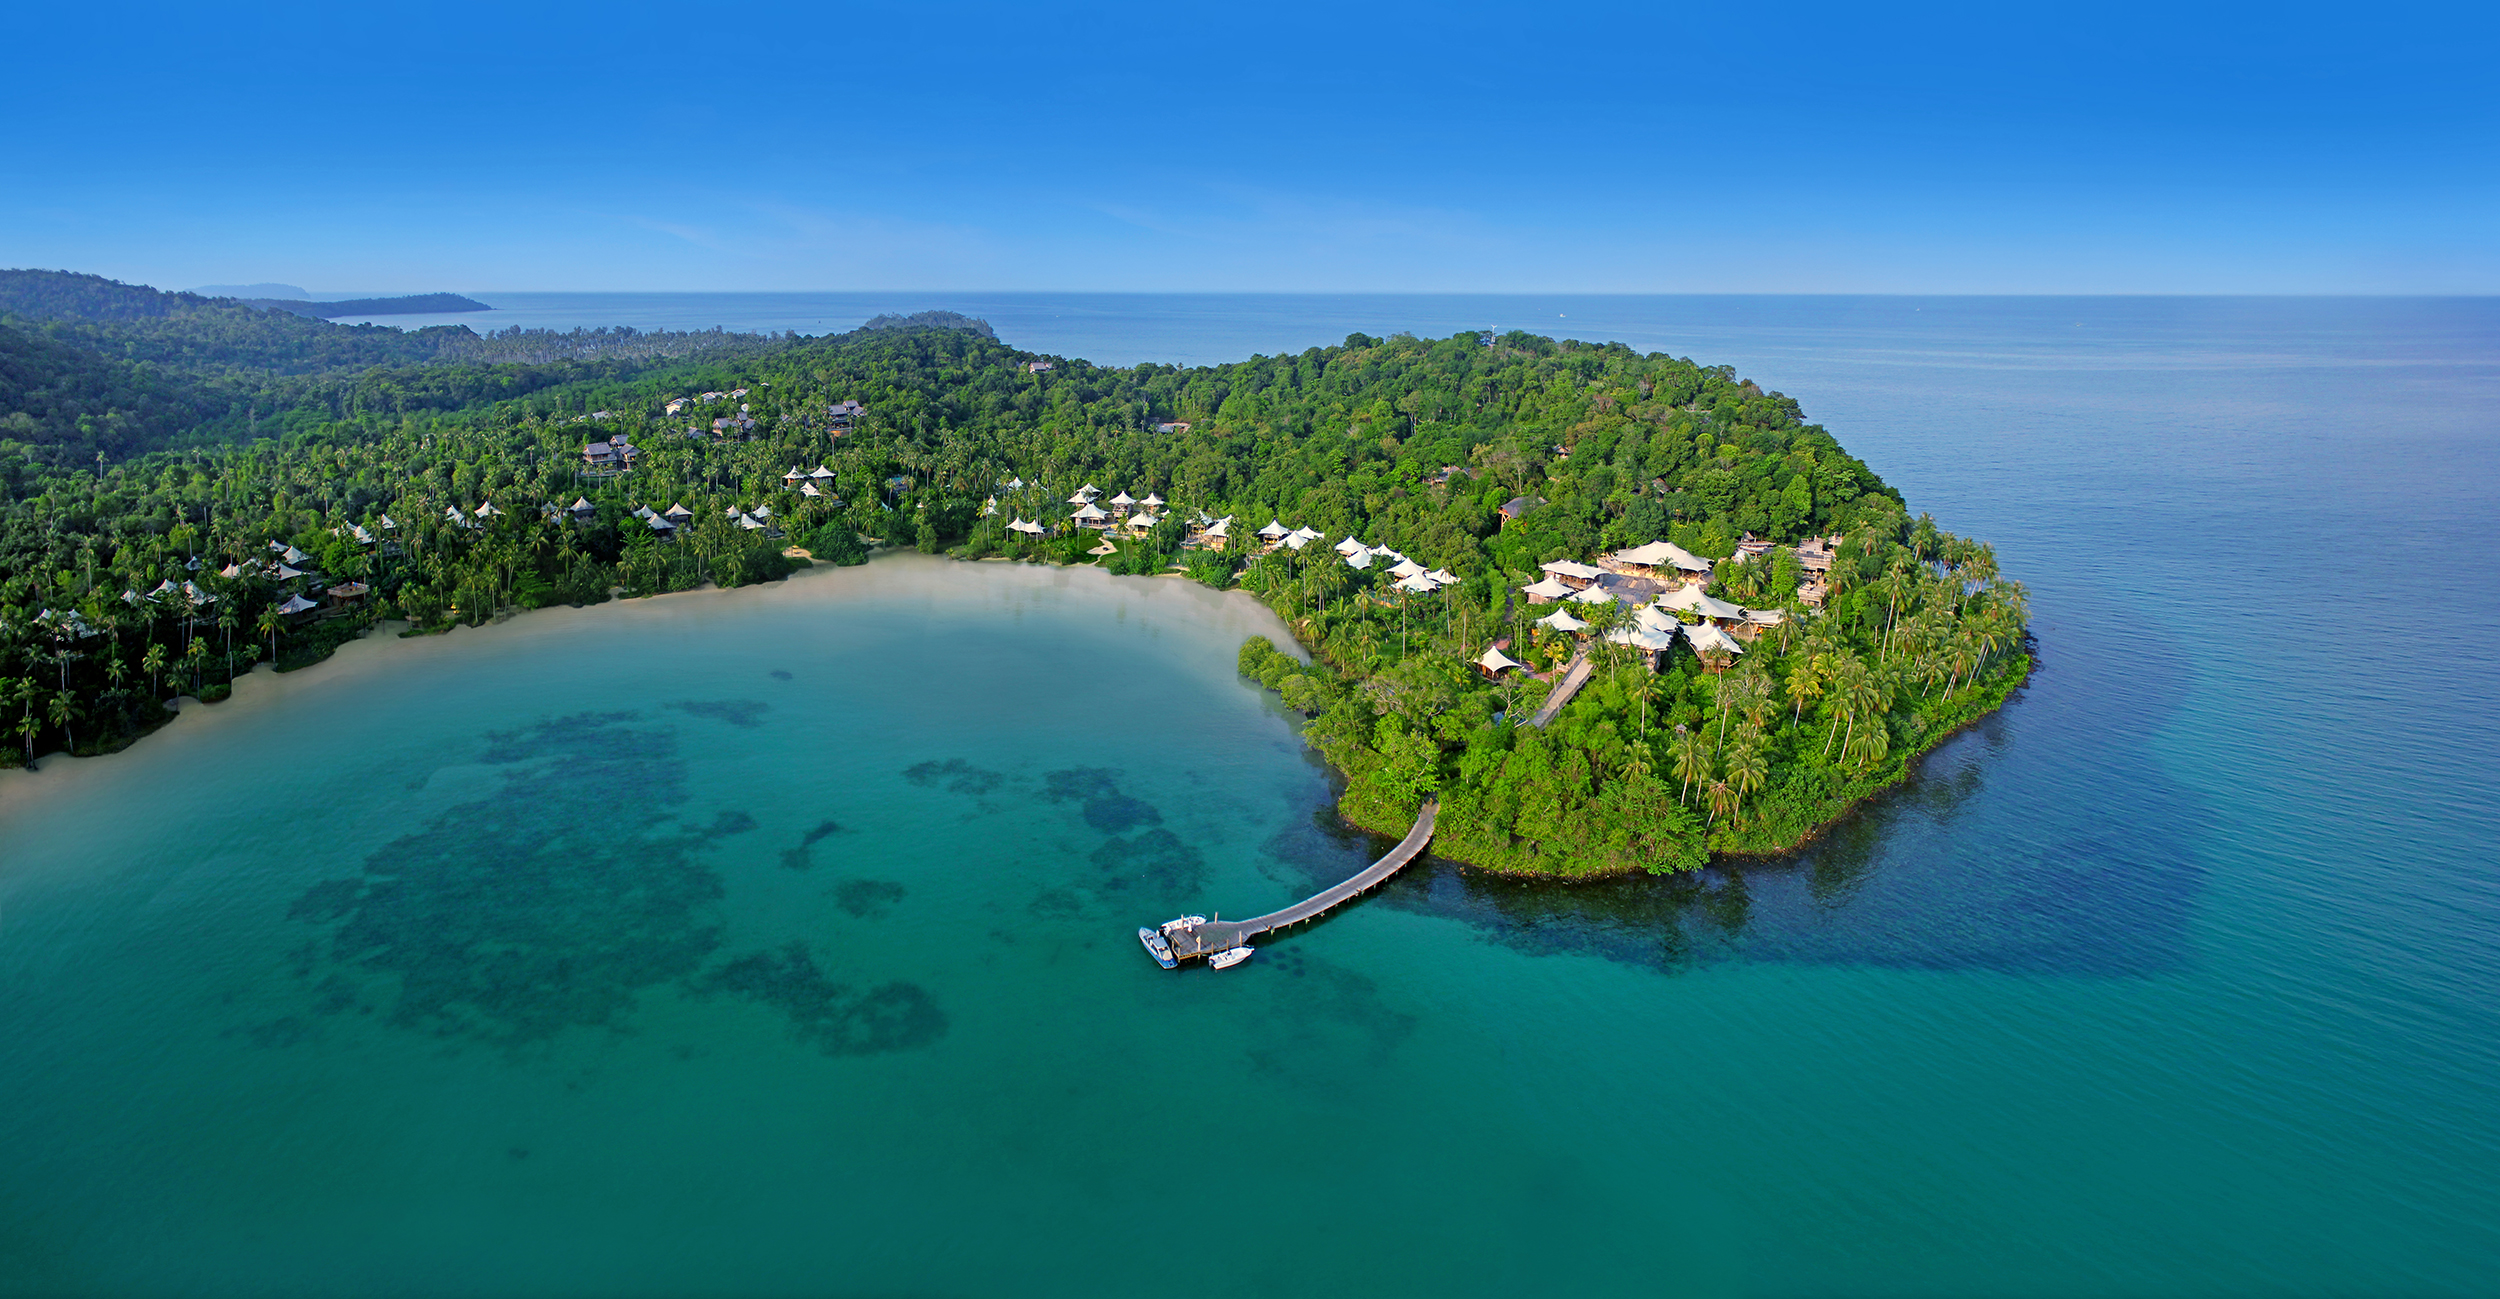 Soneva Kiri resort on Koh Kood aerial image